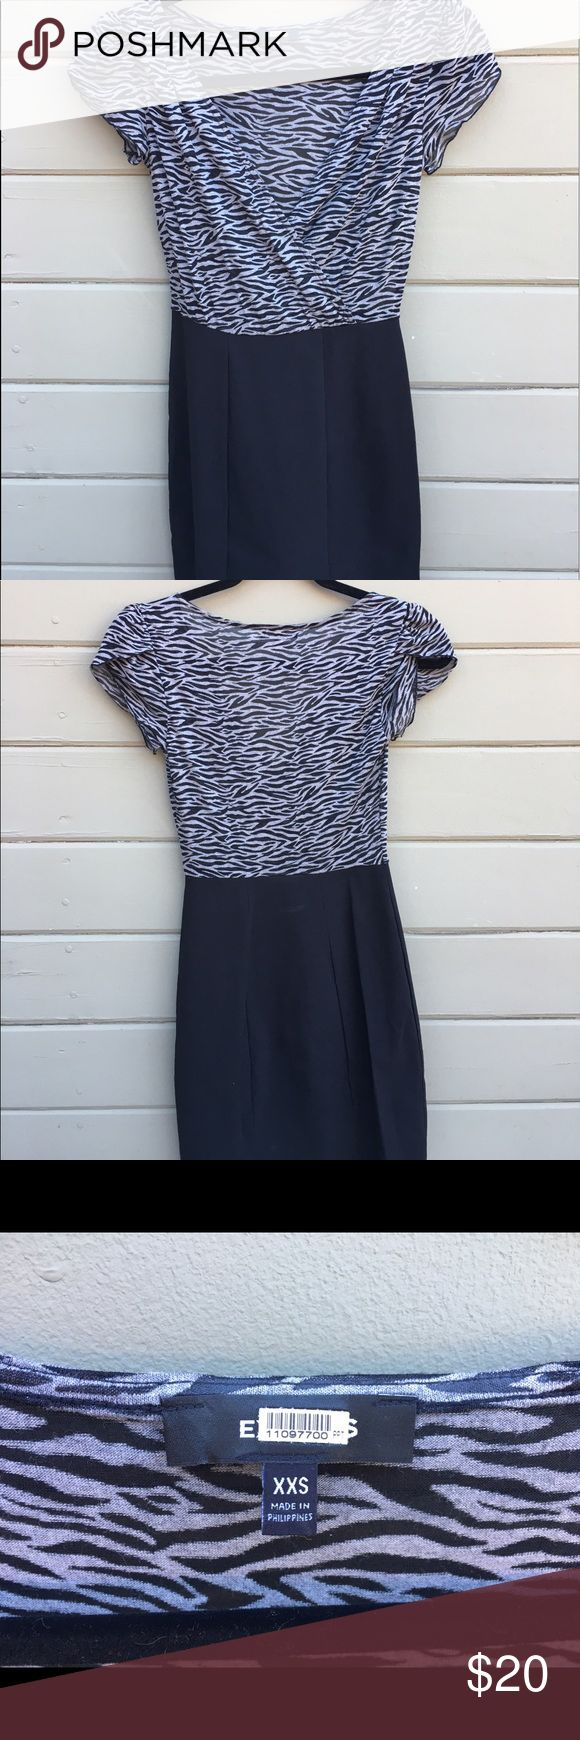 Express Animal Print and Black Color Block Dress Top is sheer, stretchy. Wearable for a night out or with an under tank and a blazer in the office Express Dresses Midi